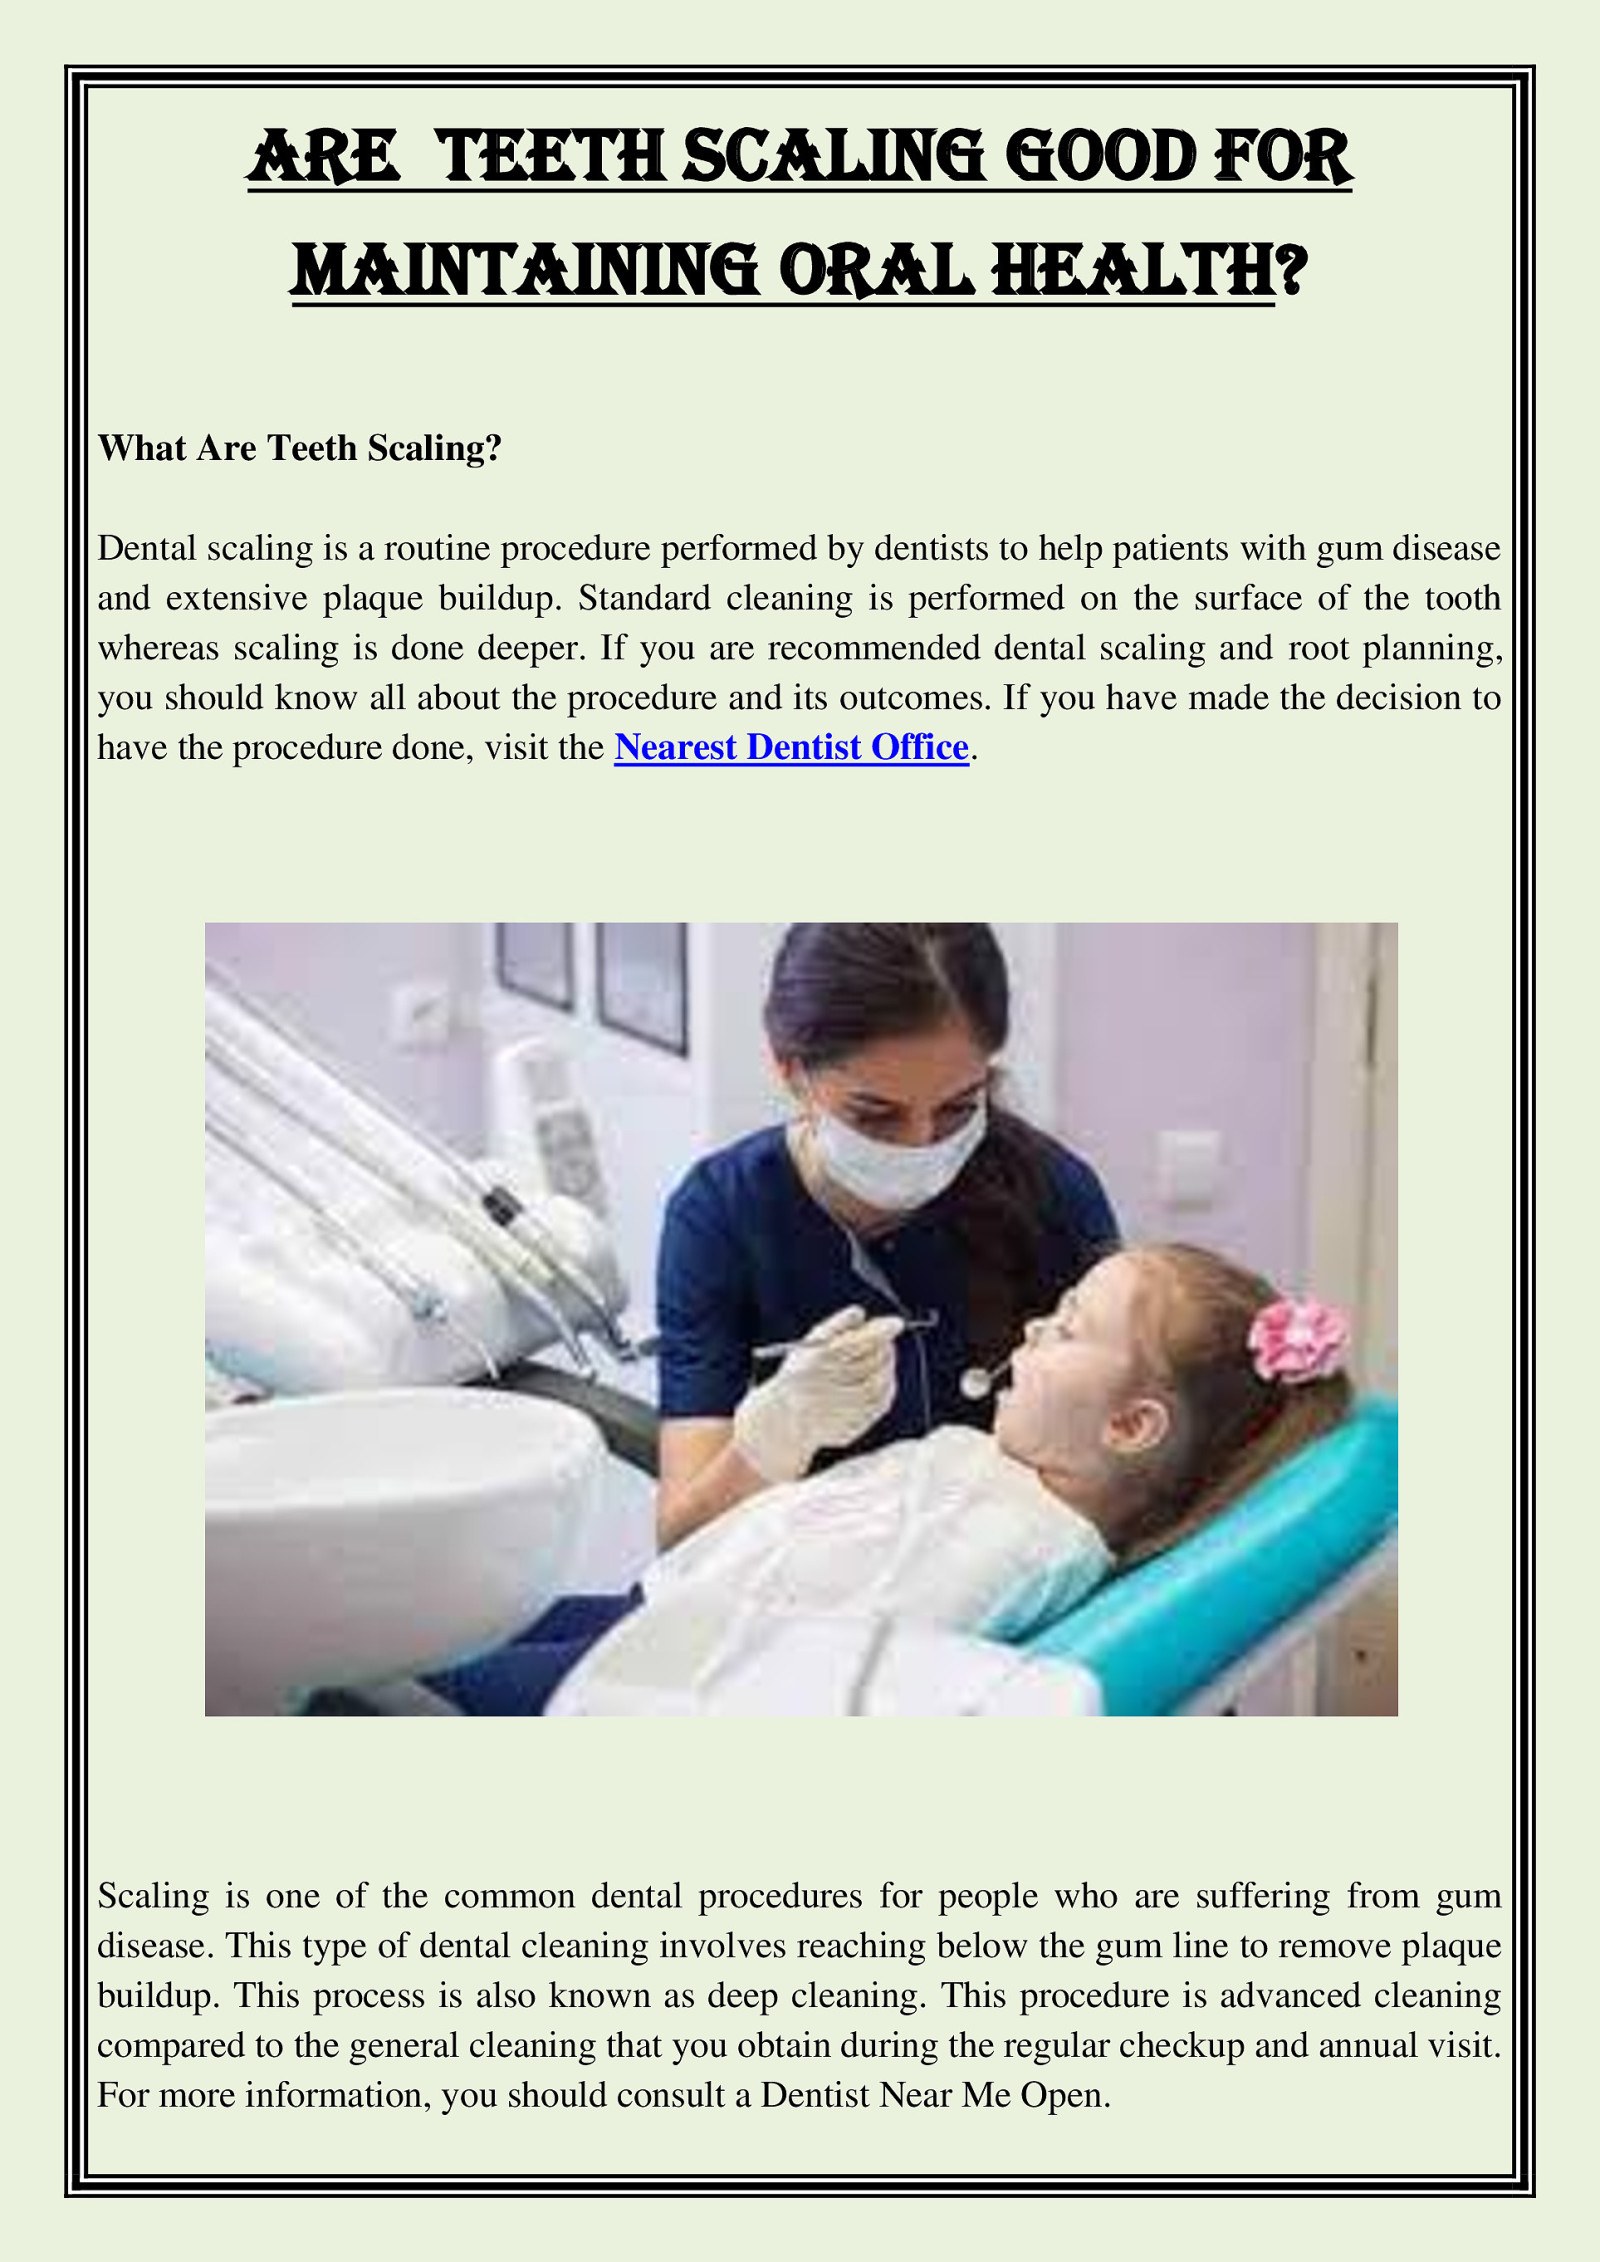 Are Teeth Scaling Good For Maintaining Oral Health?